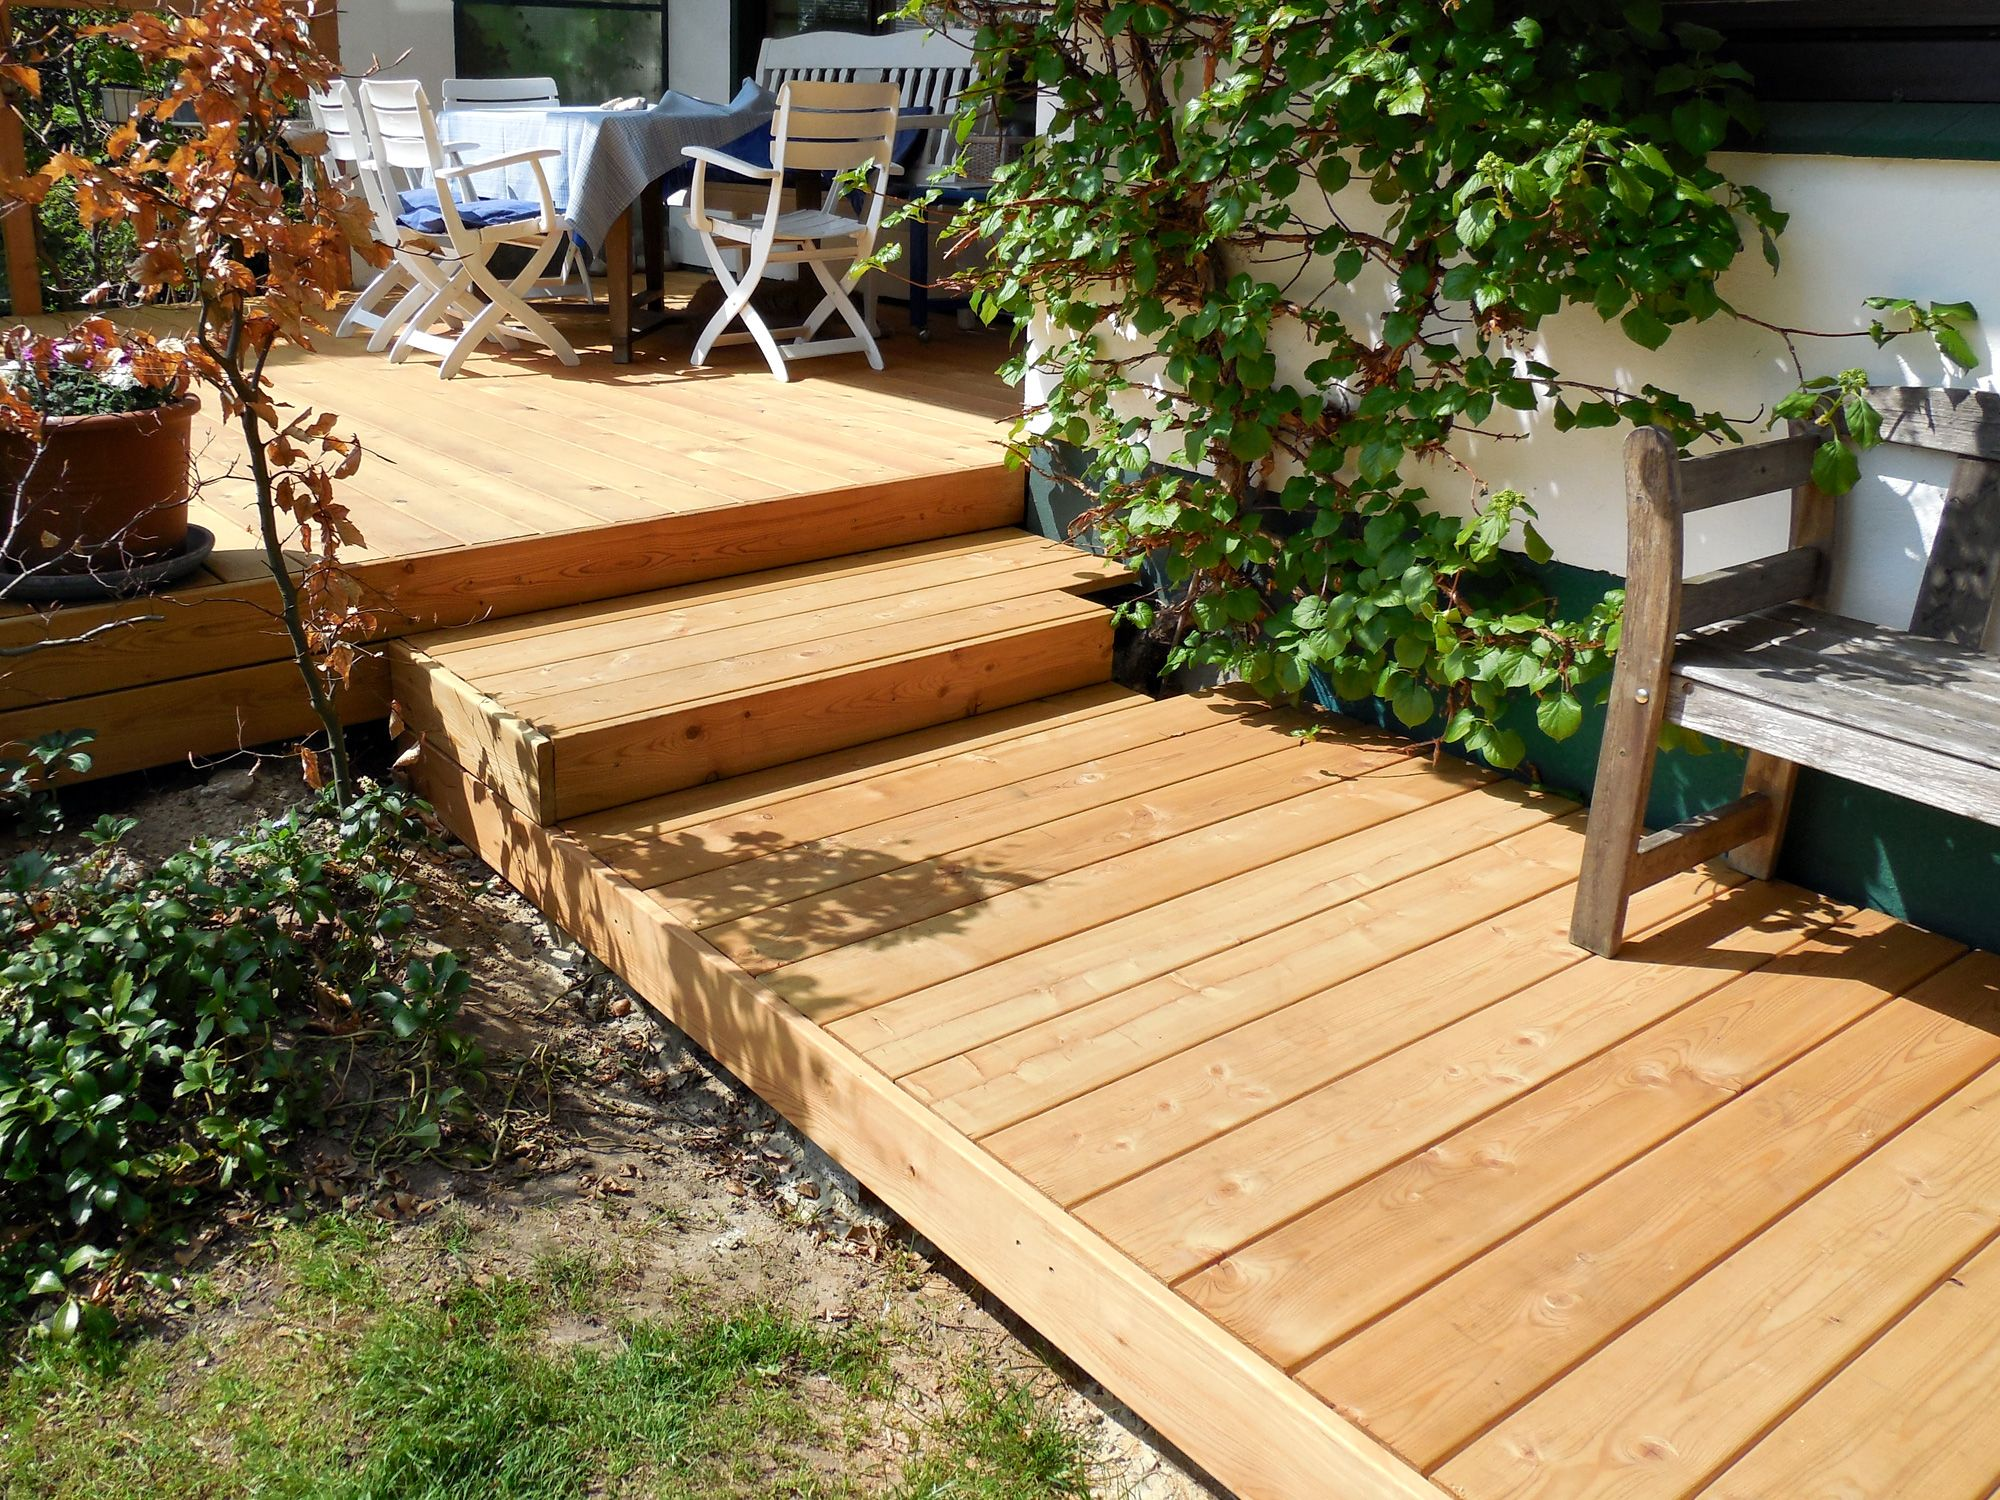 The Type Of Wood Used For The External Staircase Pedal To Be Painted Terrassendielen Holzterrasse Terrasse